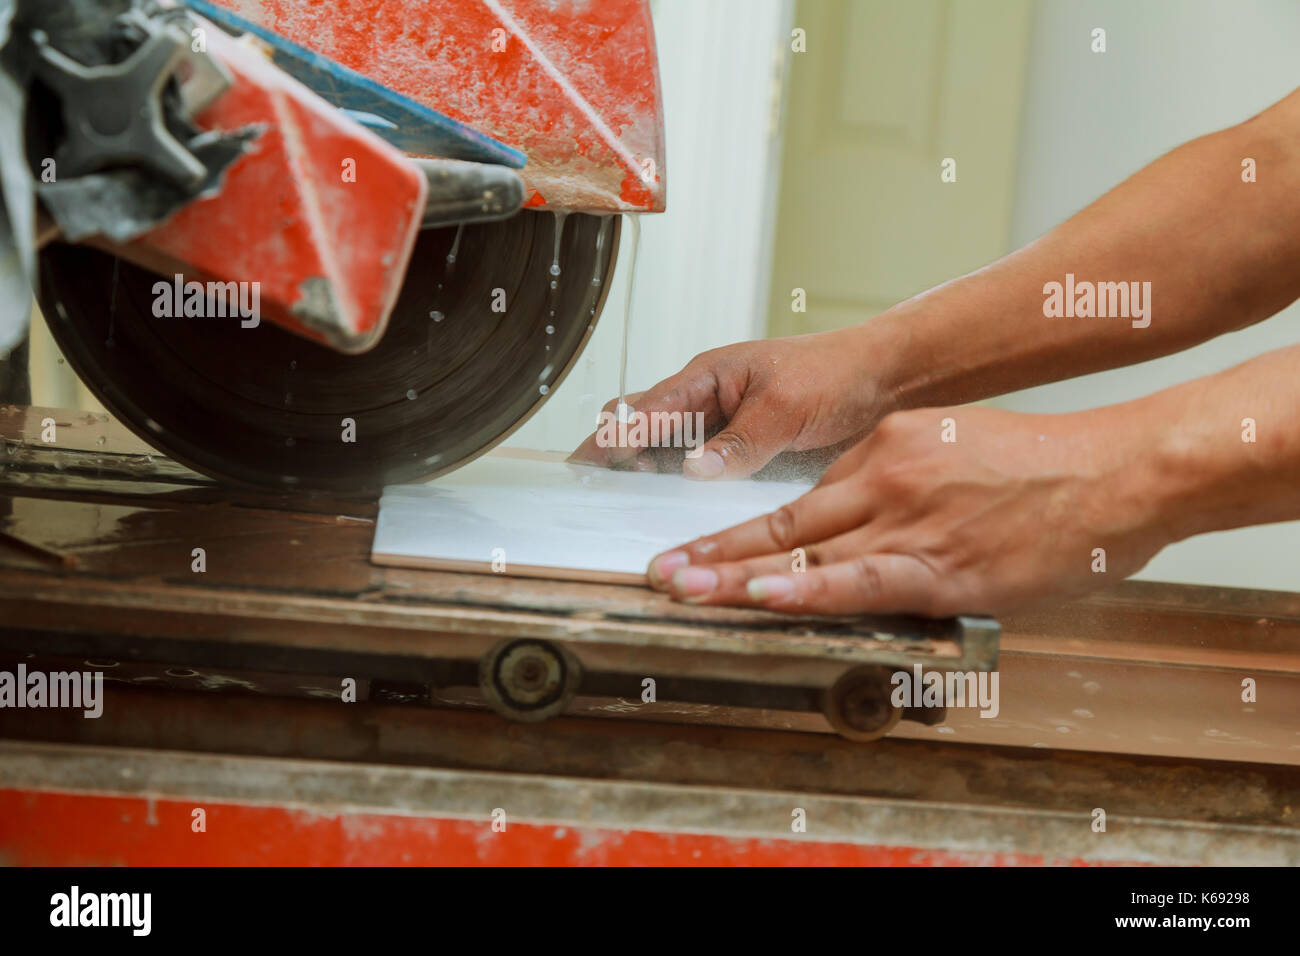 How to use a ceramic tile cutter